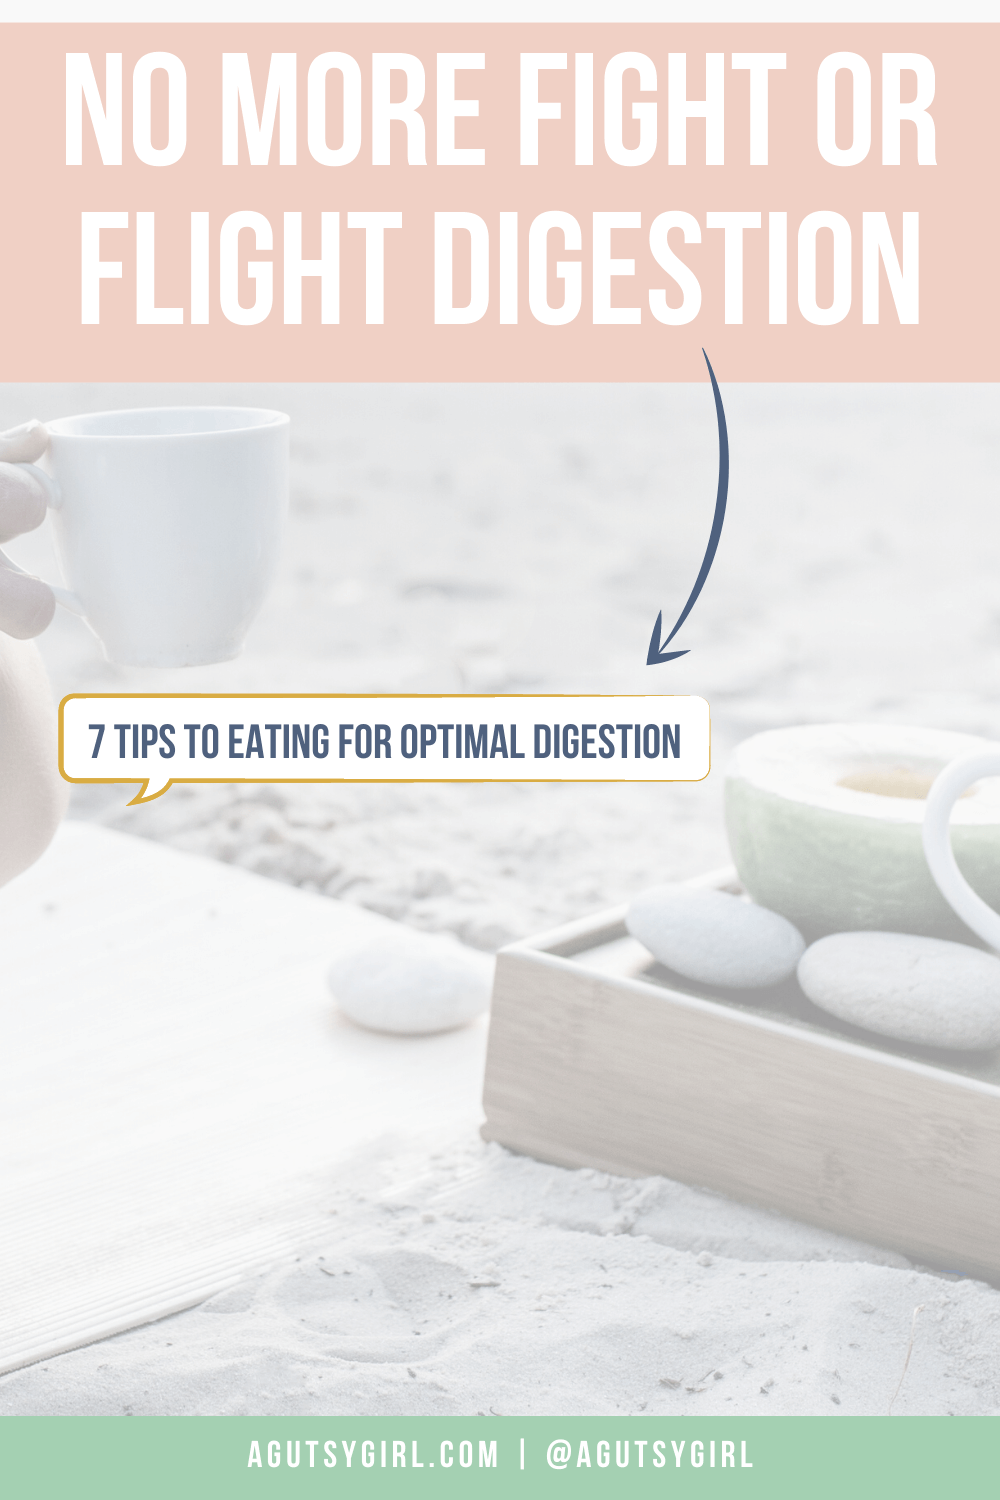 No More Fight or Flight Digestion agutsygirl.com #guthealth #fightorflight #digestion #digest